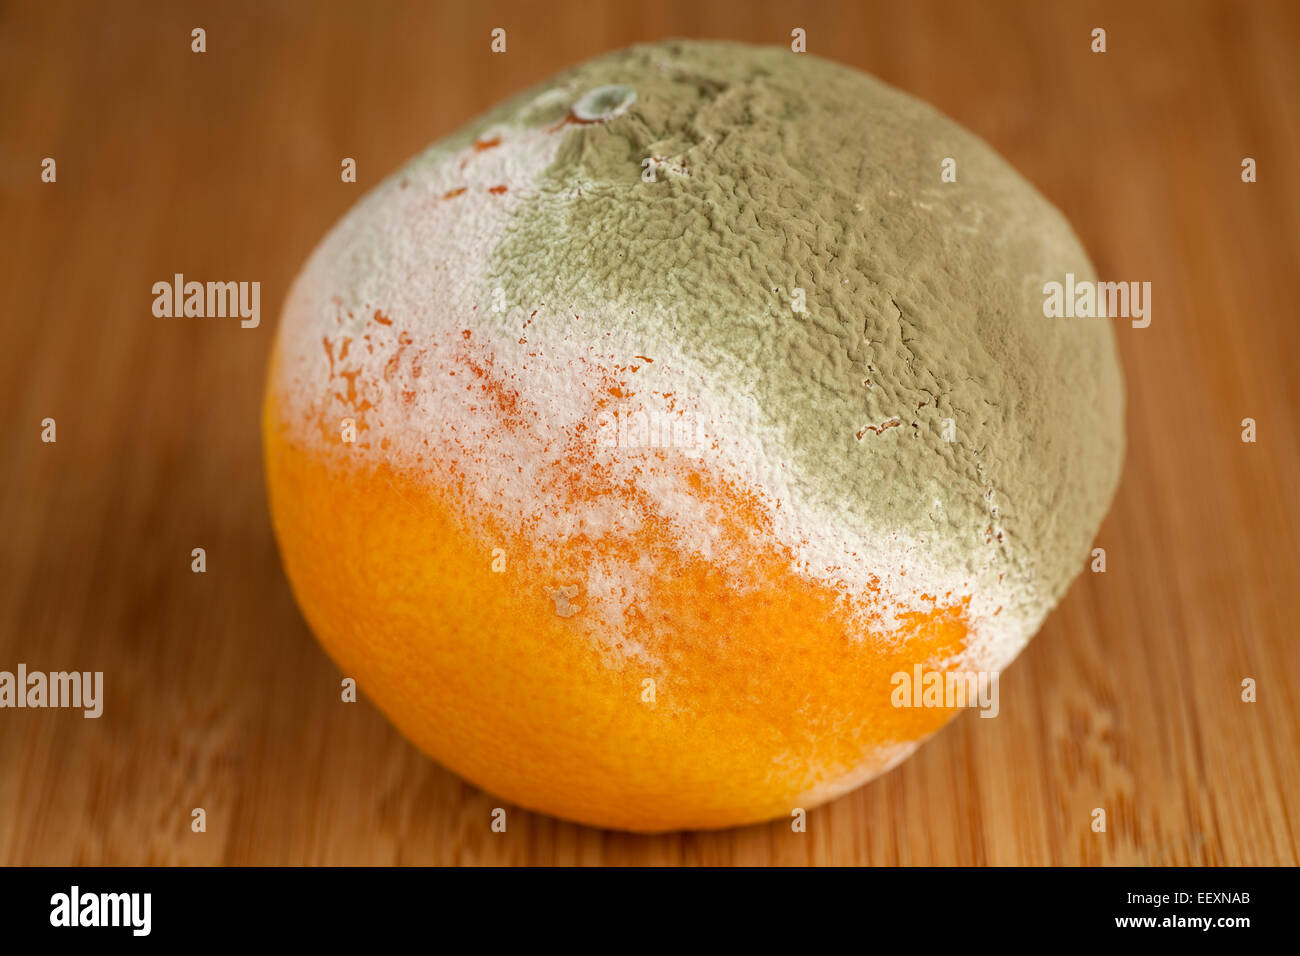 whole rotted mandarin on table in kitchen - Stock Image